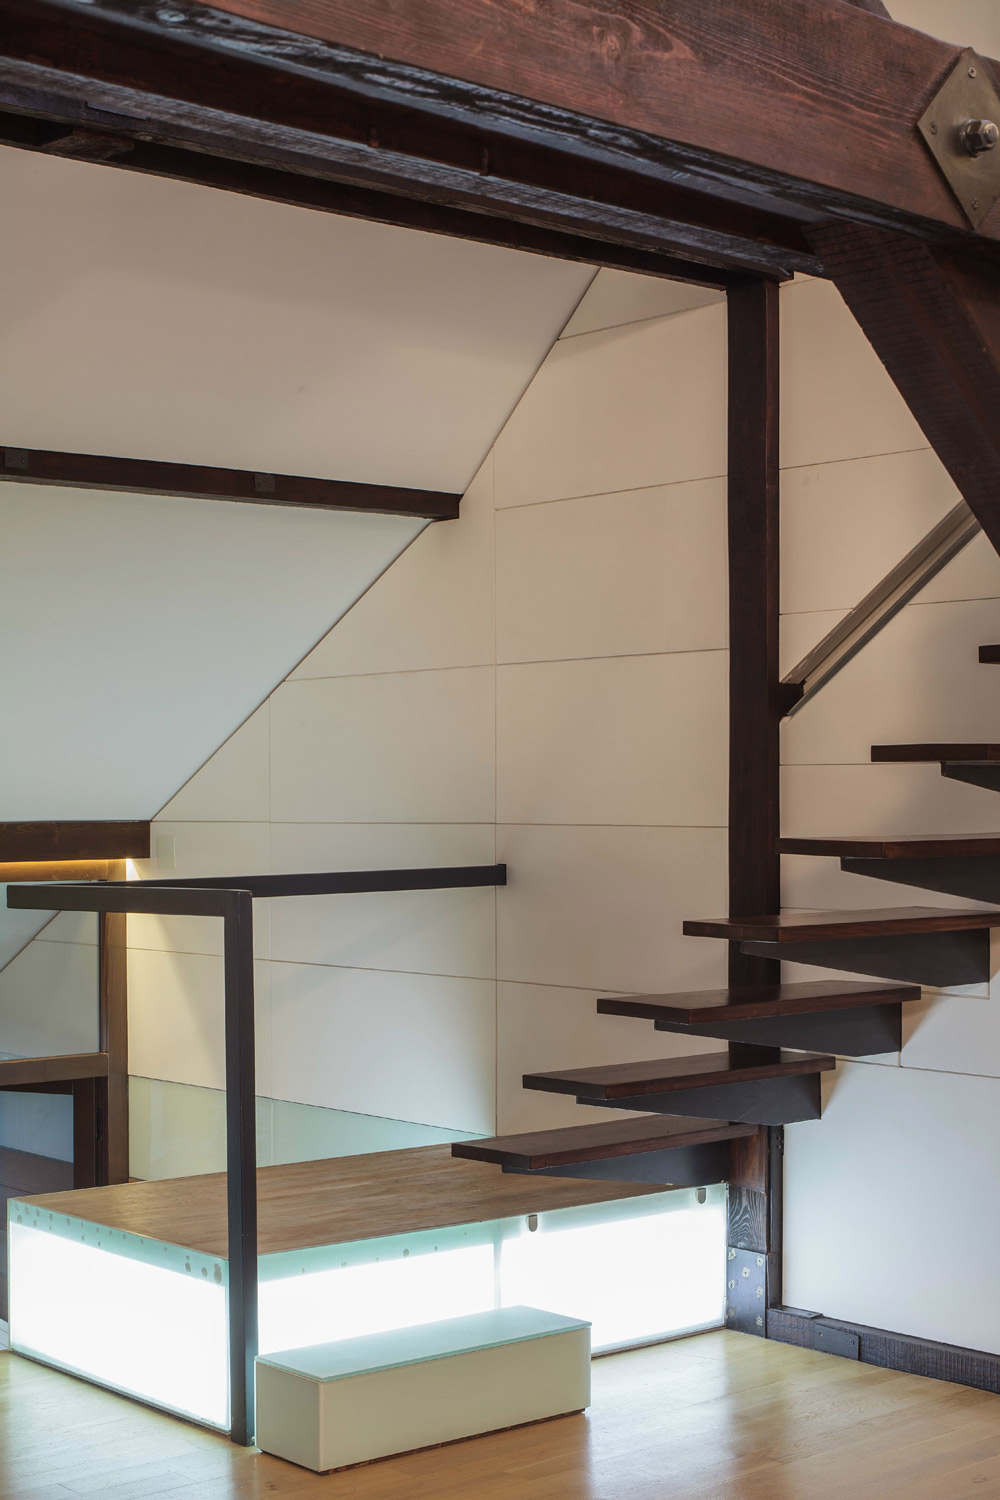 Light Box Base, Stairs, Loft in Bucharest, Romania by TECON